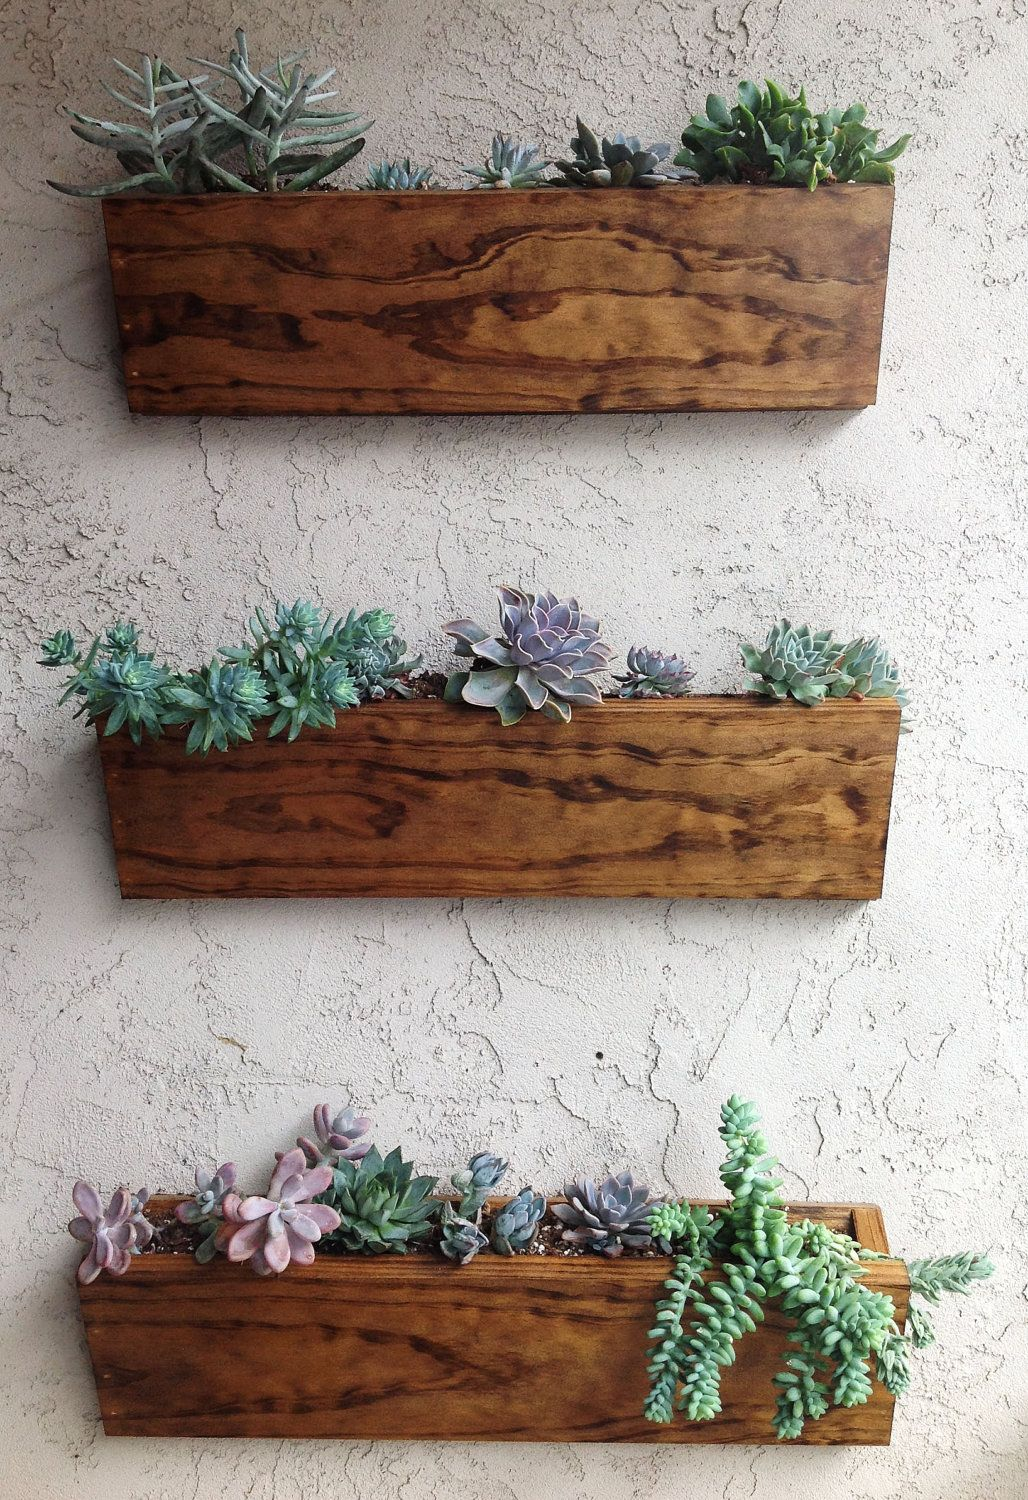 Hanging Planter Box Via Etsy Garden Grow Pinterest Planter